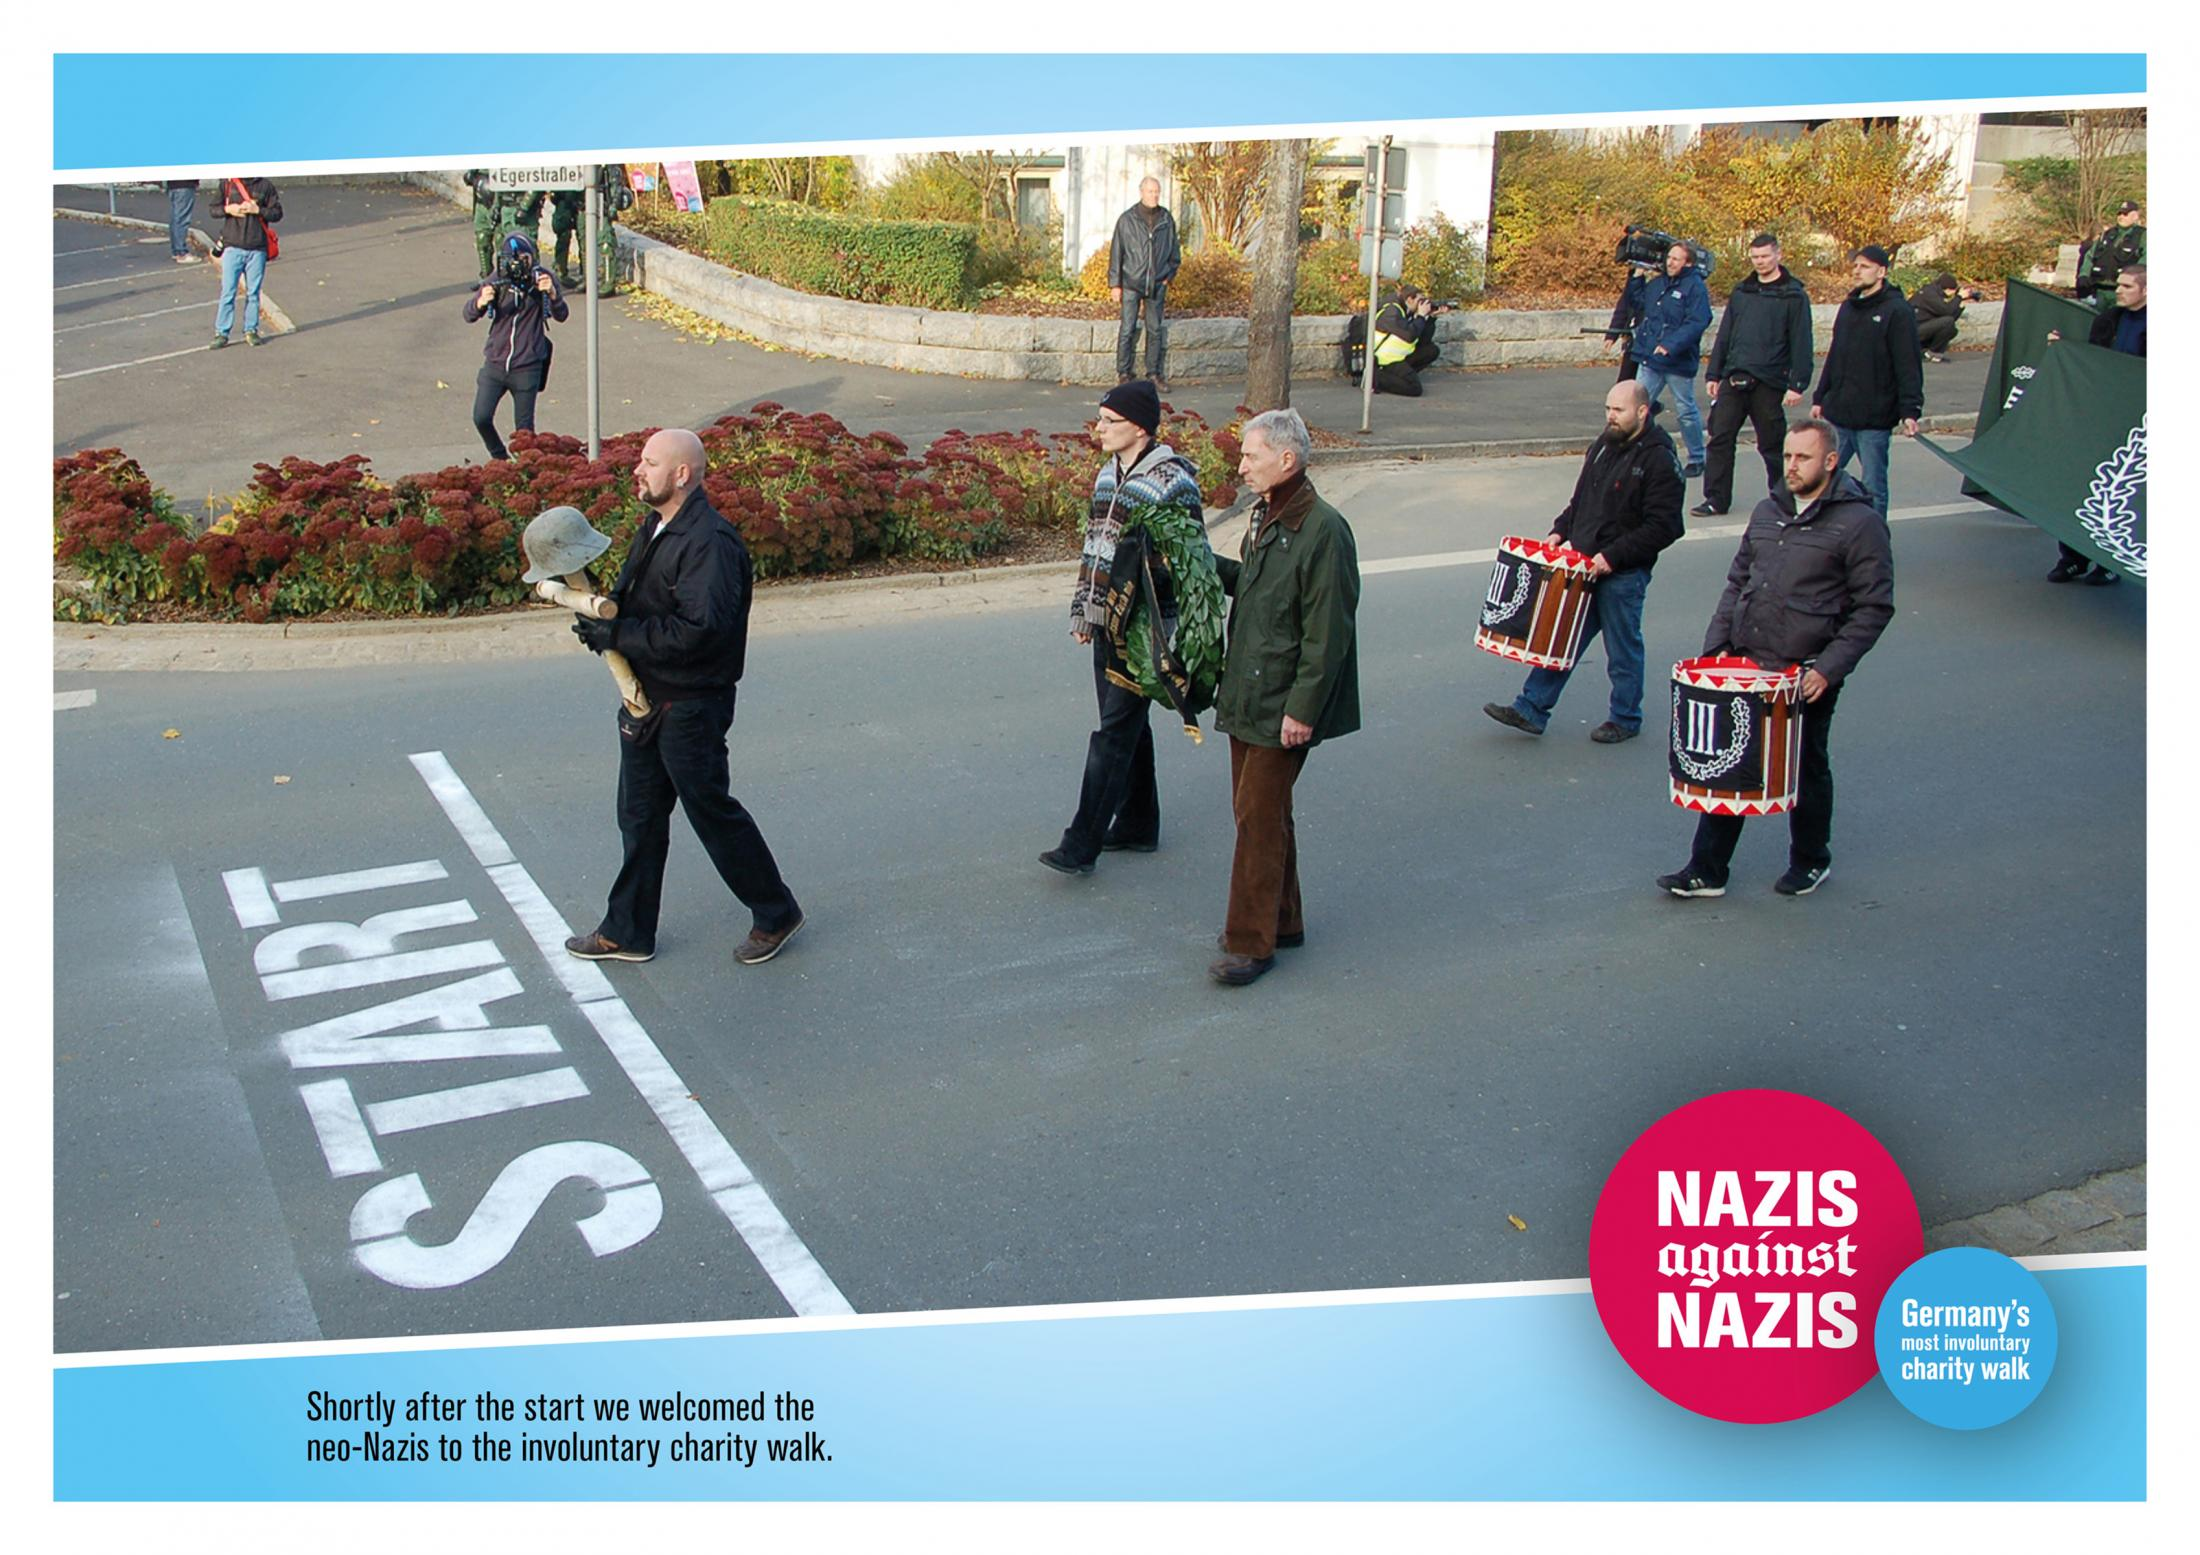 Thumbnail for Nazis against Nazis- Germany's most involuntary charity walk